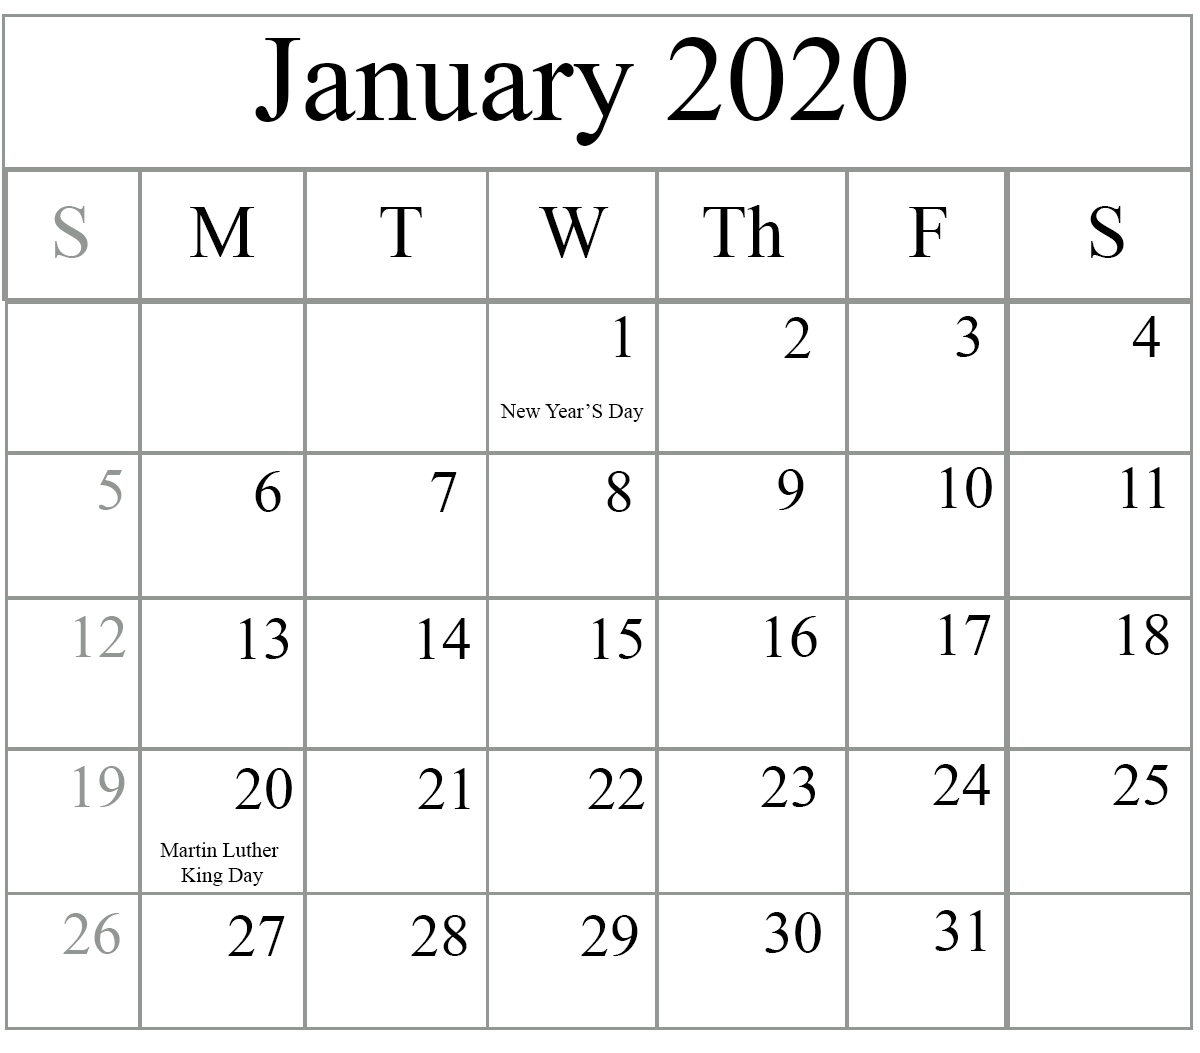 Free January 2020 Printable Calendar In Pdf, Excel & Word 2020 Calendar Printable Word